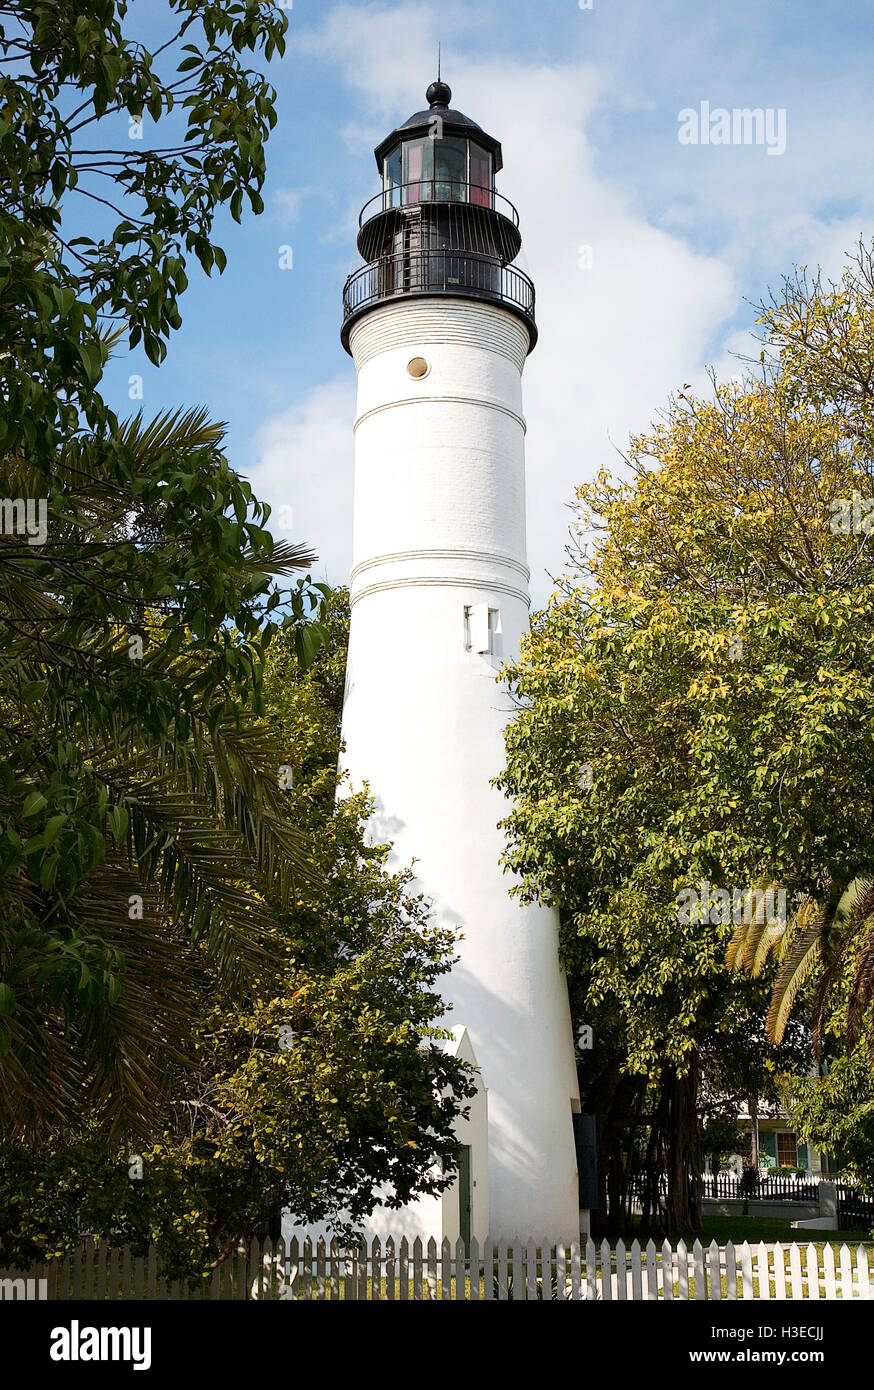 The historic Key West Lighthouse was decommissioned in 1969 and today serves as a beautiful historical museum. - Stock Image